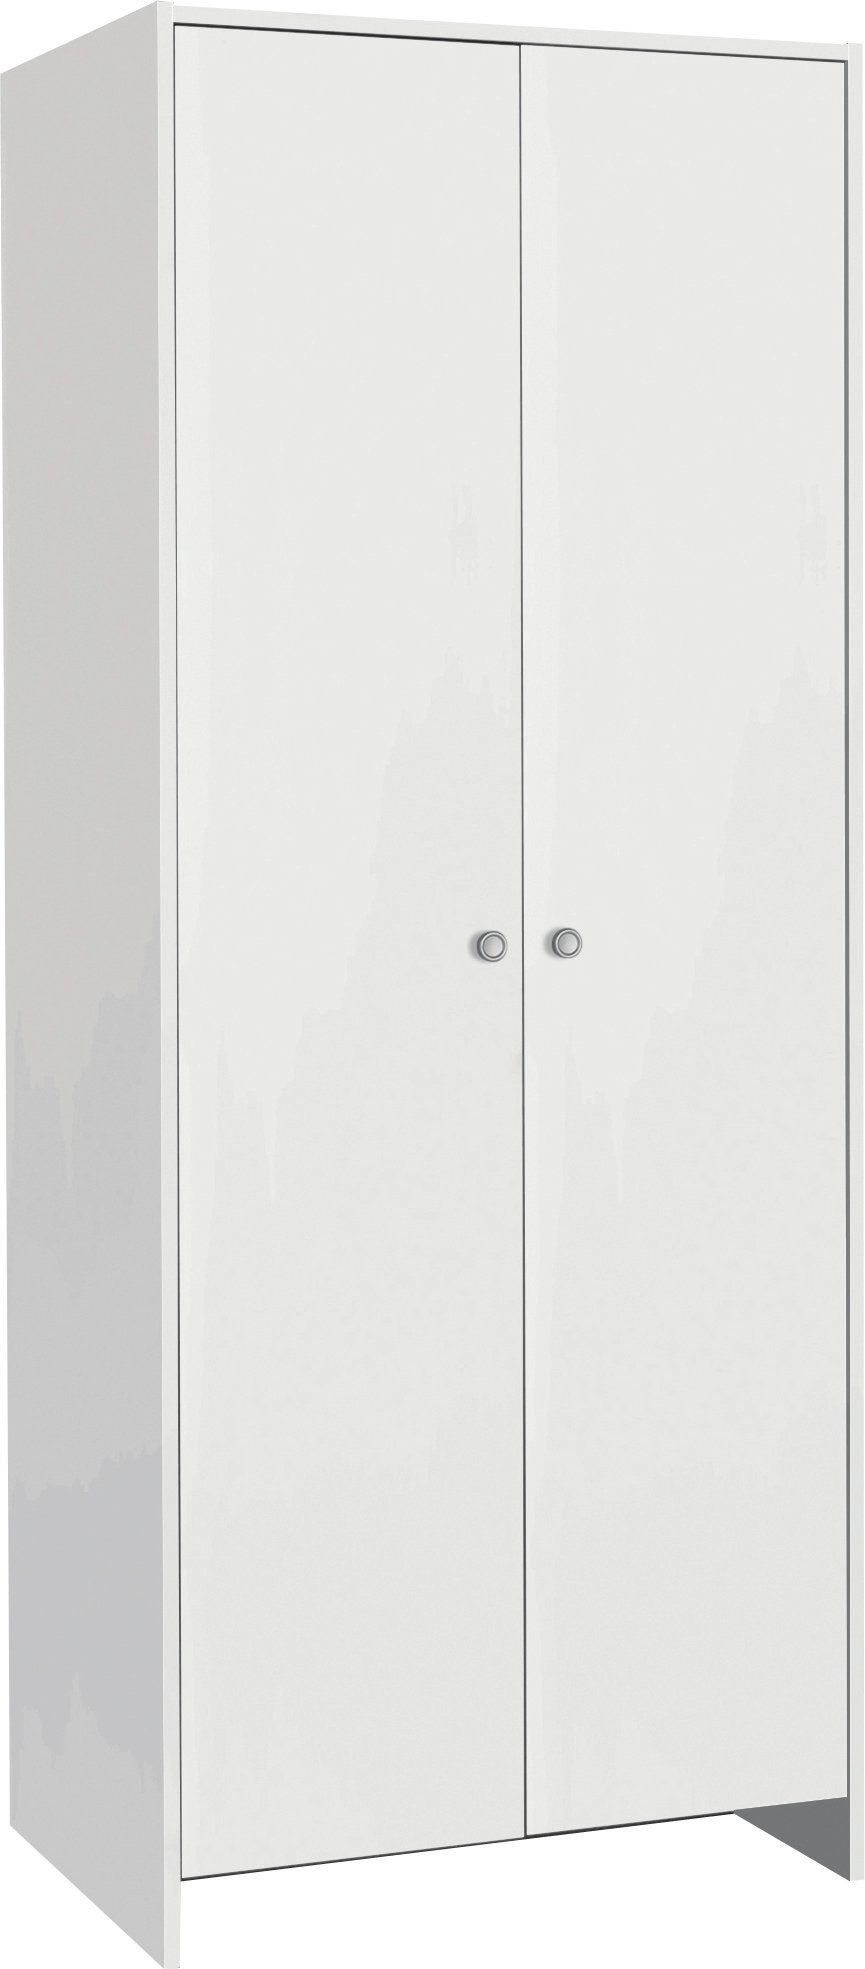 Argos Home Seville 2 Door Wardrobe